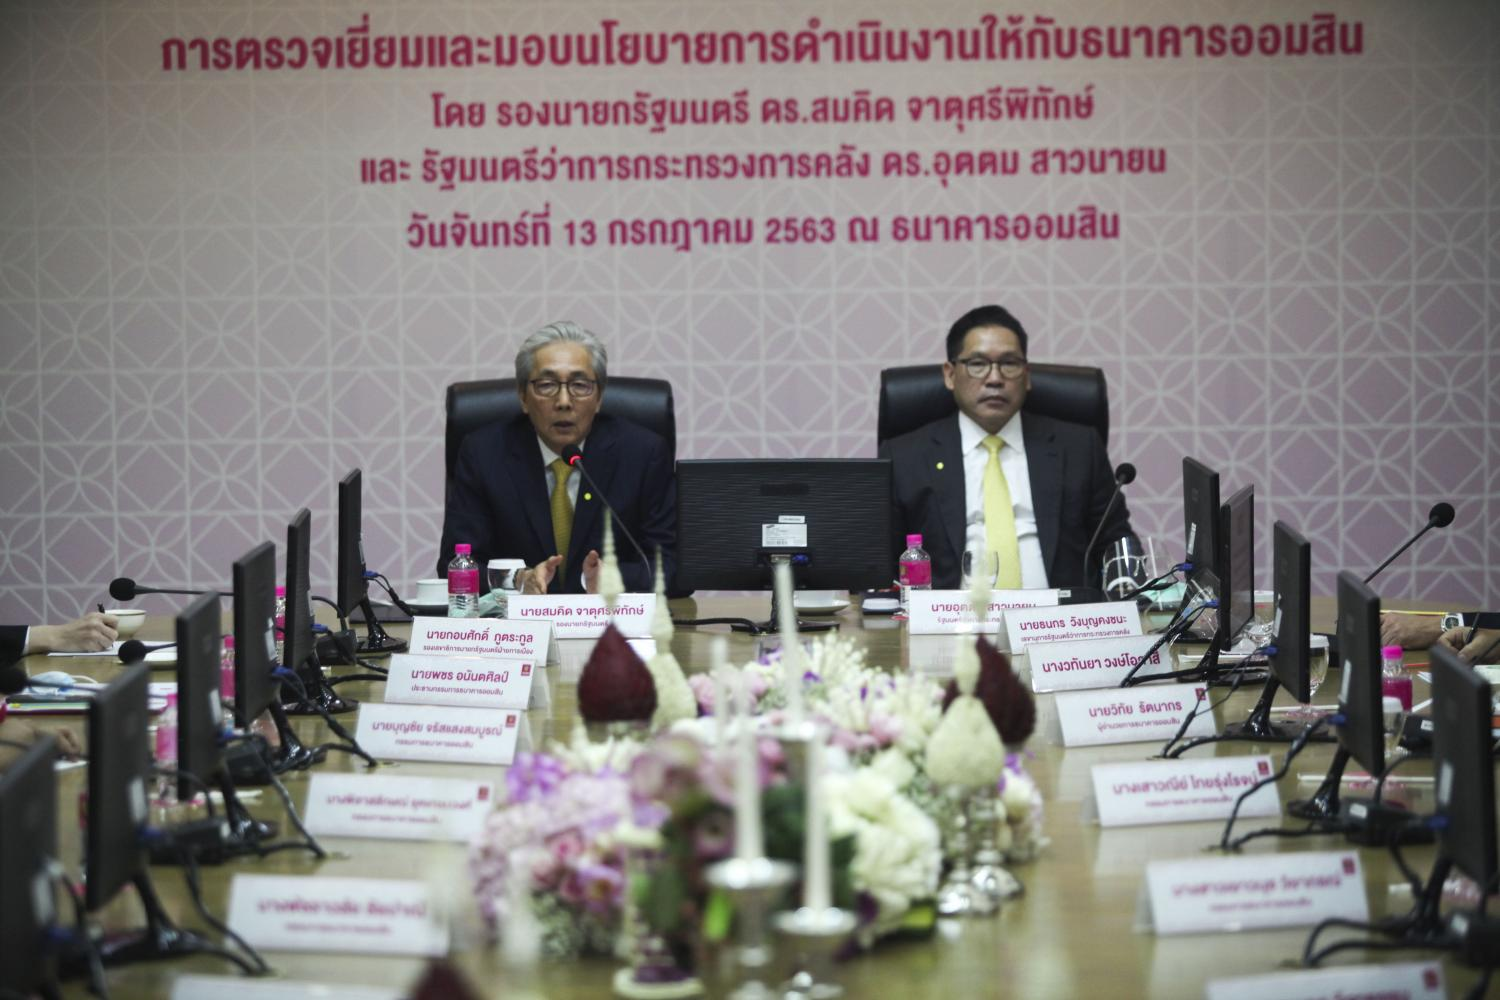 Deputy Prime Minister Somkid Jatusripitak is accompanied by Finance Minister Uttama Savayana (right) during the meeting held at the headquarters of the Government Savings Bank. (Photo by Arnun Chonmahatrakool)